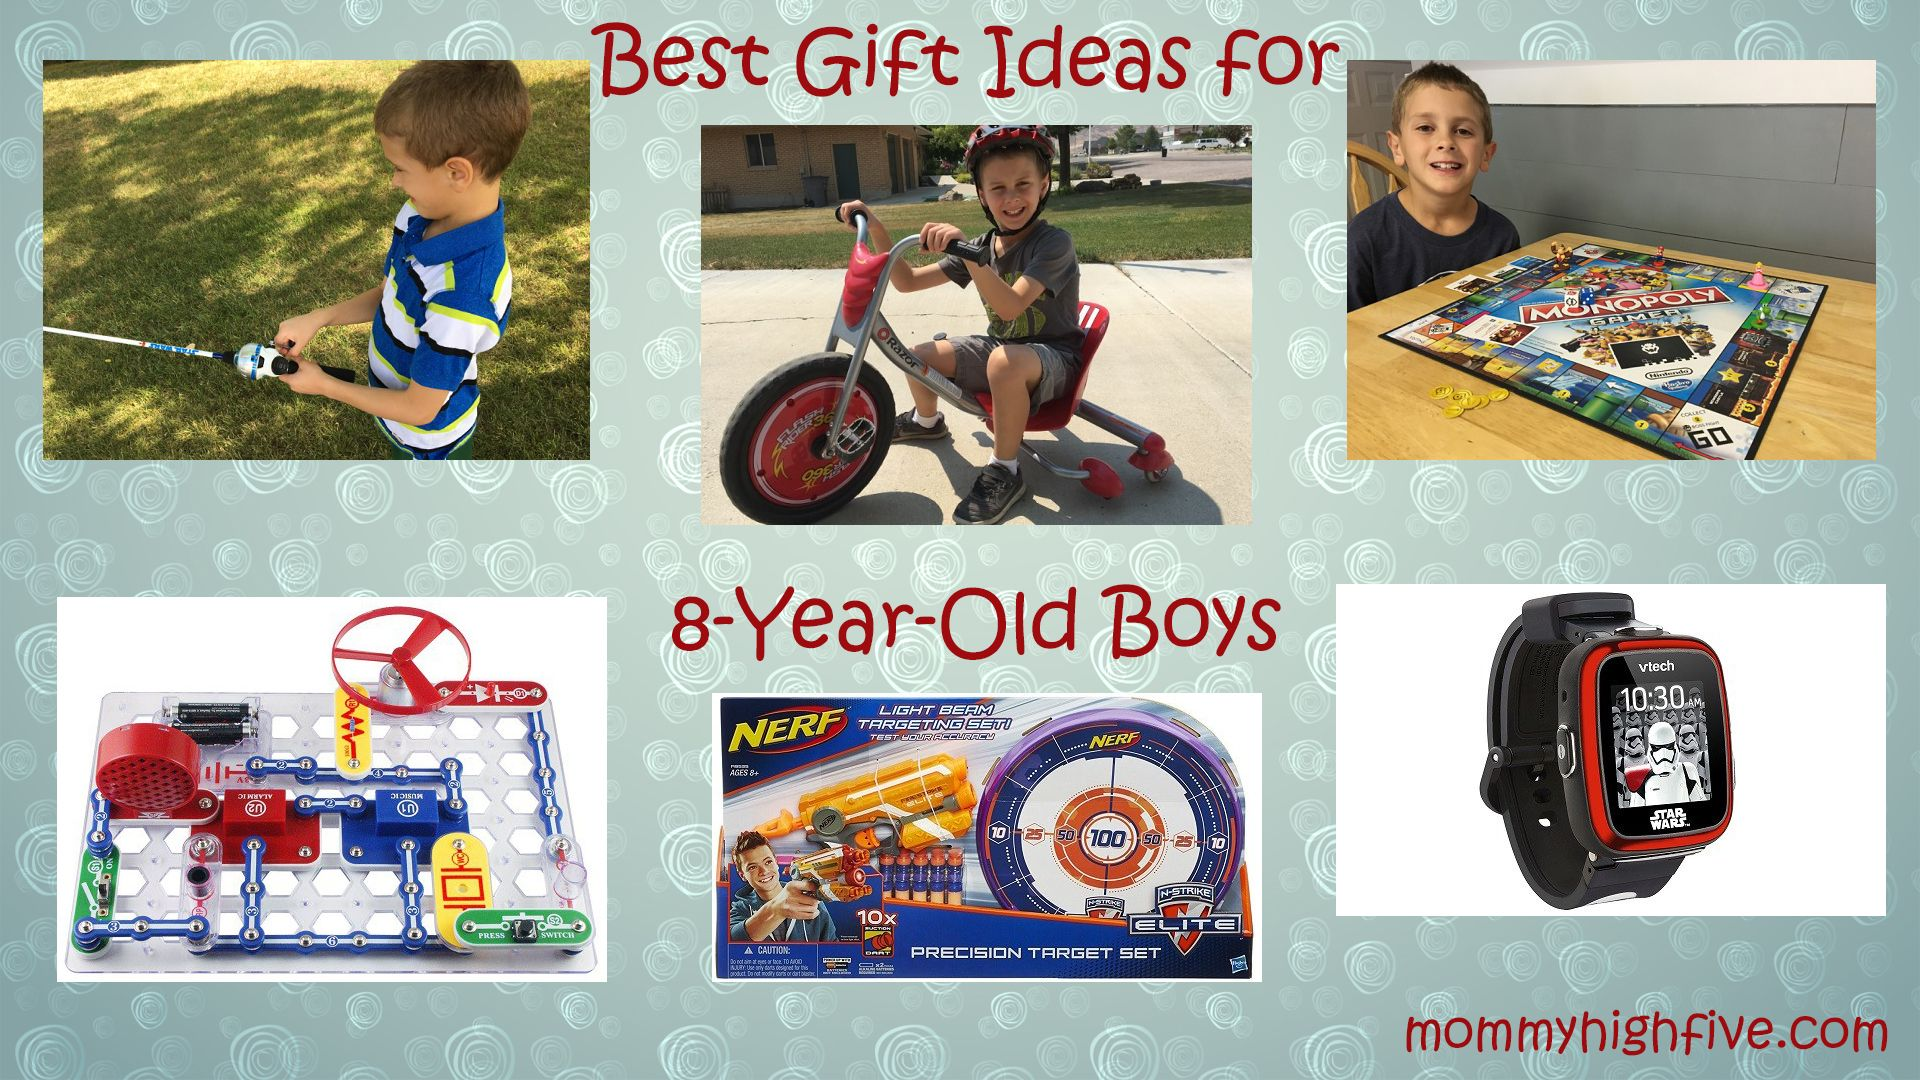 Toys For Boys 8 10 Years Old : Check out these great gift ideas for year old boys kids gift